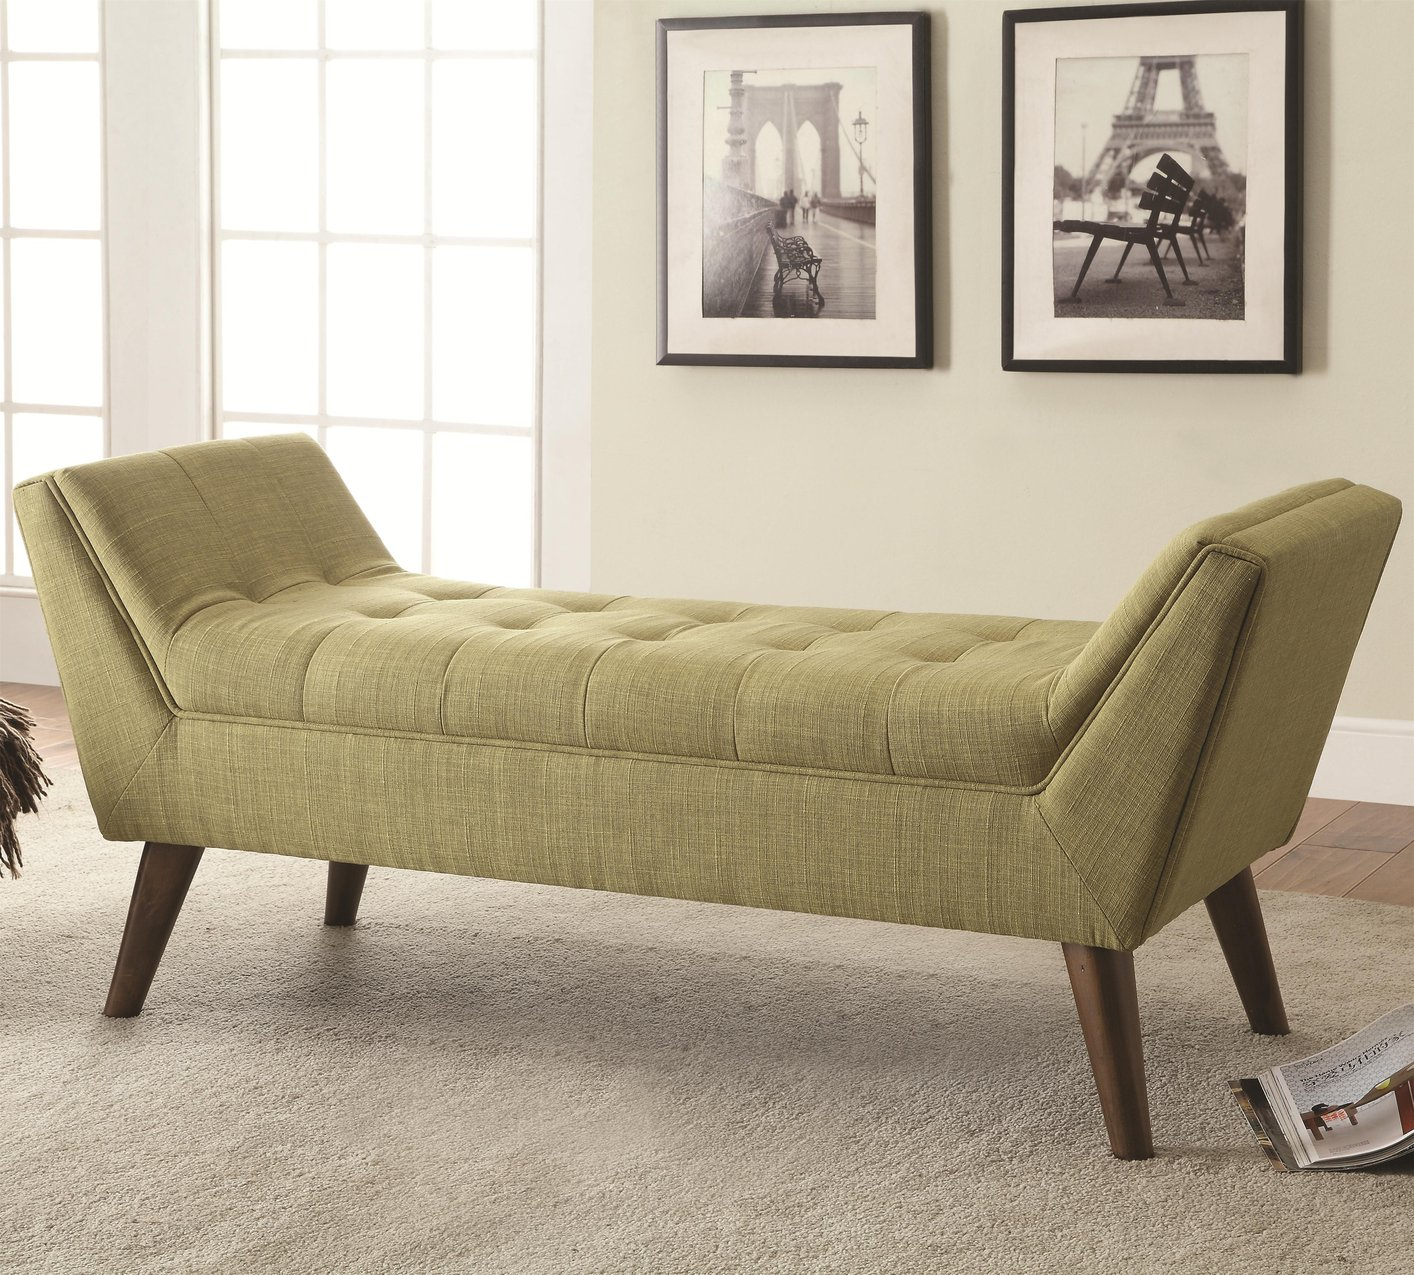 Marvelous Rolled Arm Bench With Storage Top Tufted Rolled Arm Sofa Pabps2019 Chair Design Images Pabps2019Com